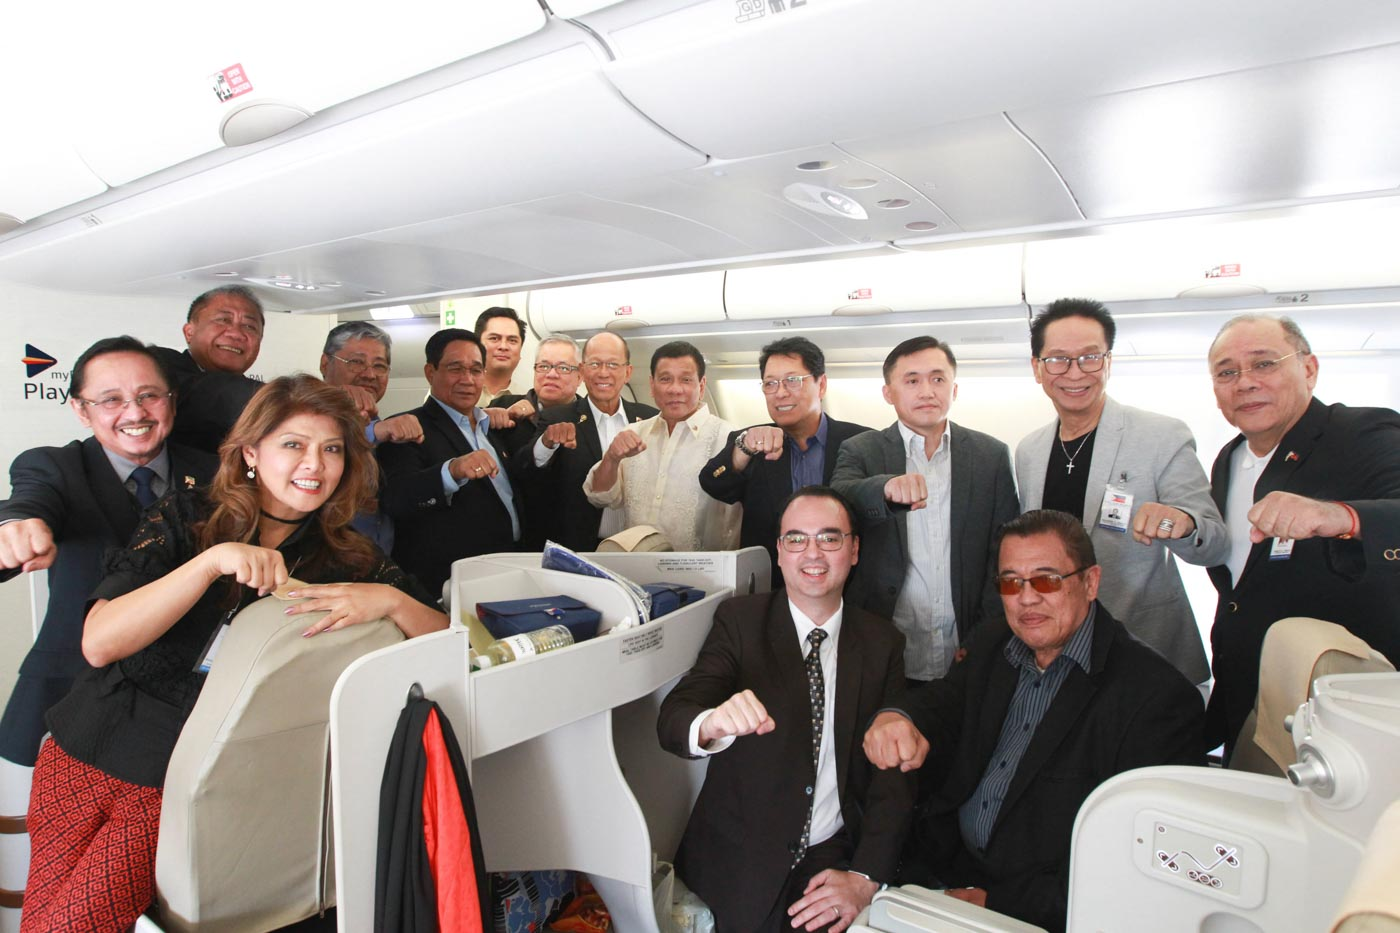 PRESIDENT'S PLANE BUDDIES. President Duterte brings along Cabinet members, government officials, and Ilocos Norte Governor Imee Marcos to the Middle East. Presidential photo